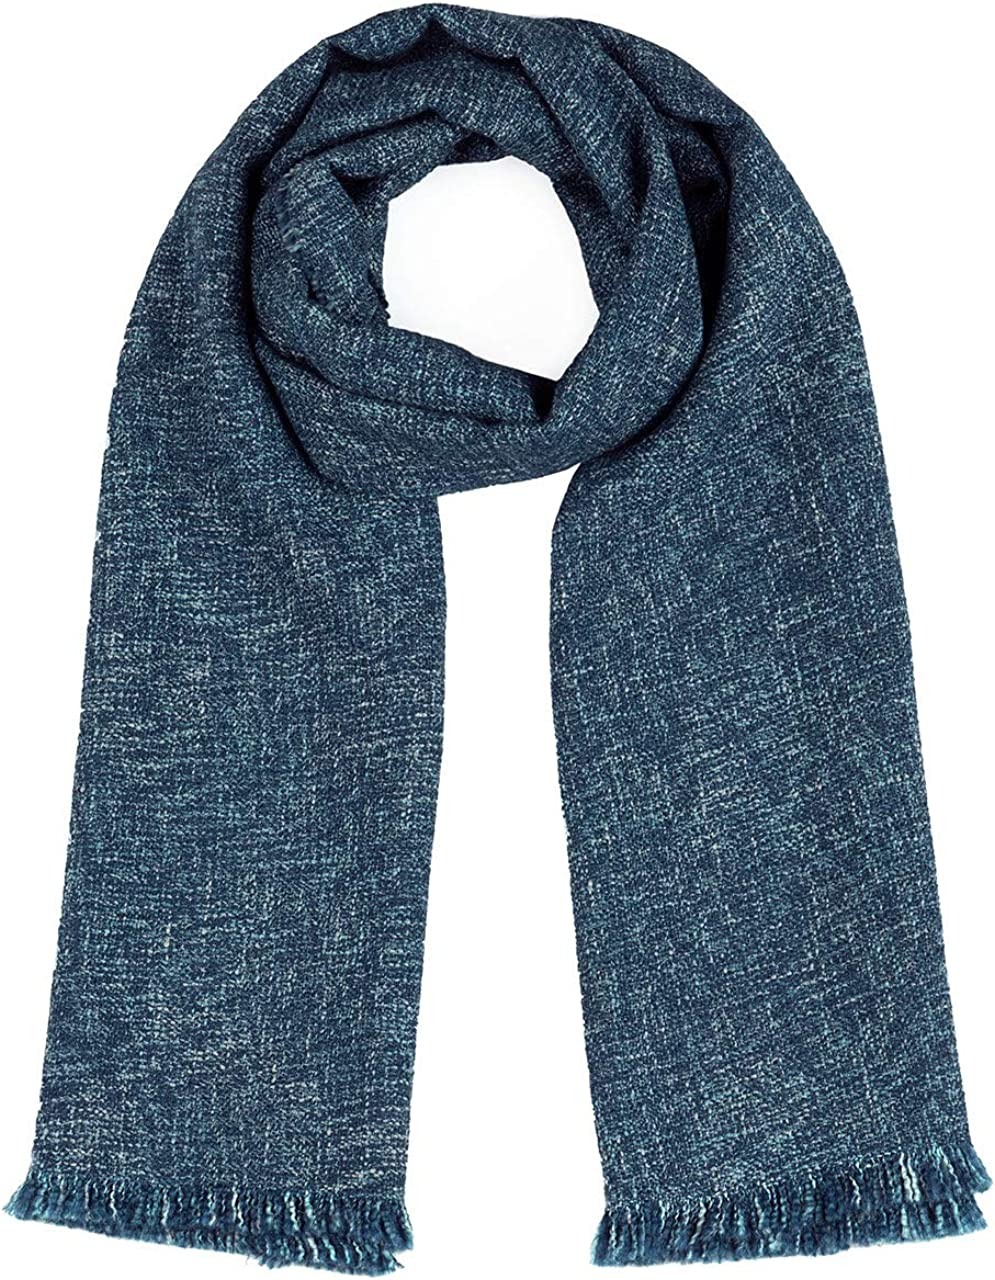 Inca Fashions Blanket Wide Scarf for Fashion & Cold Weather | Baby Alpaca & Wool